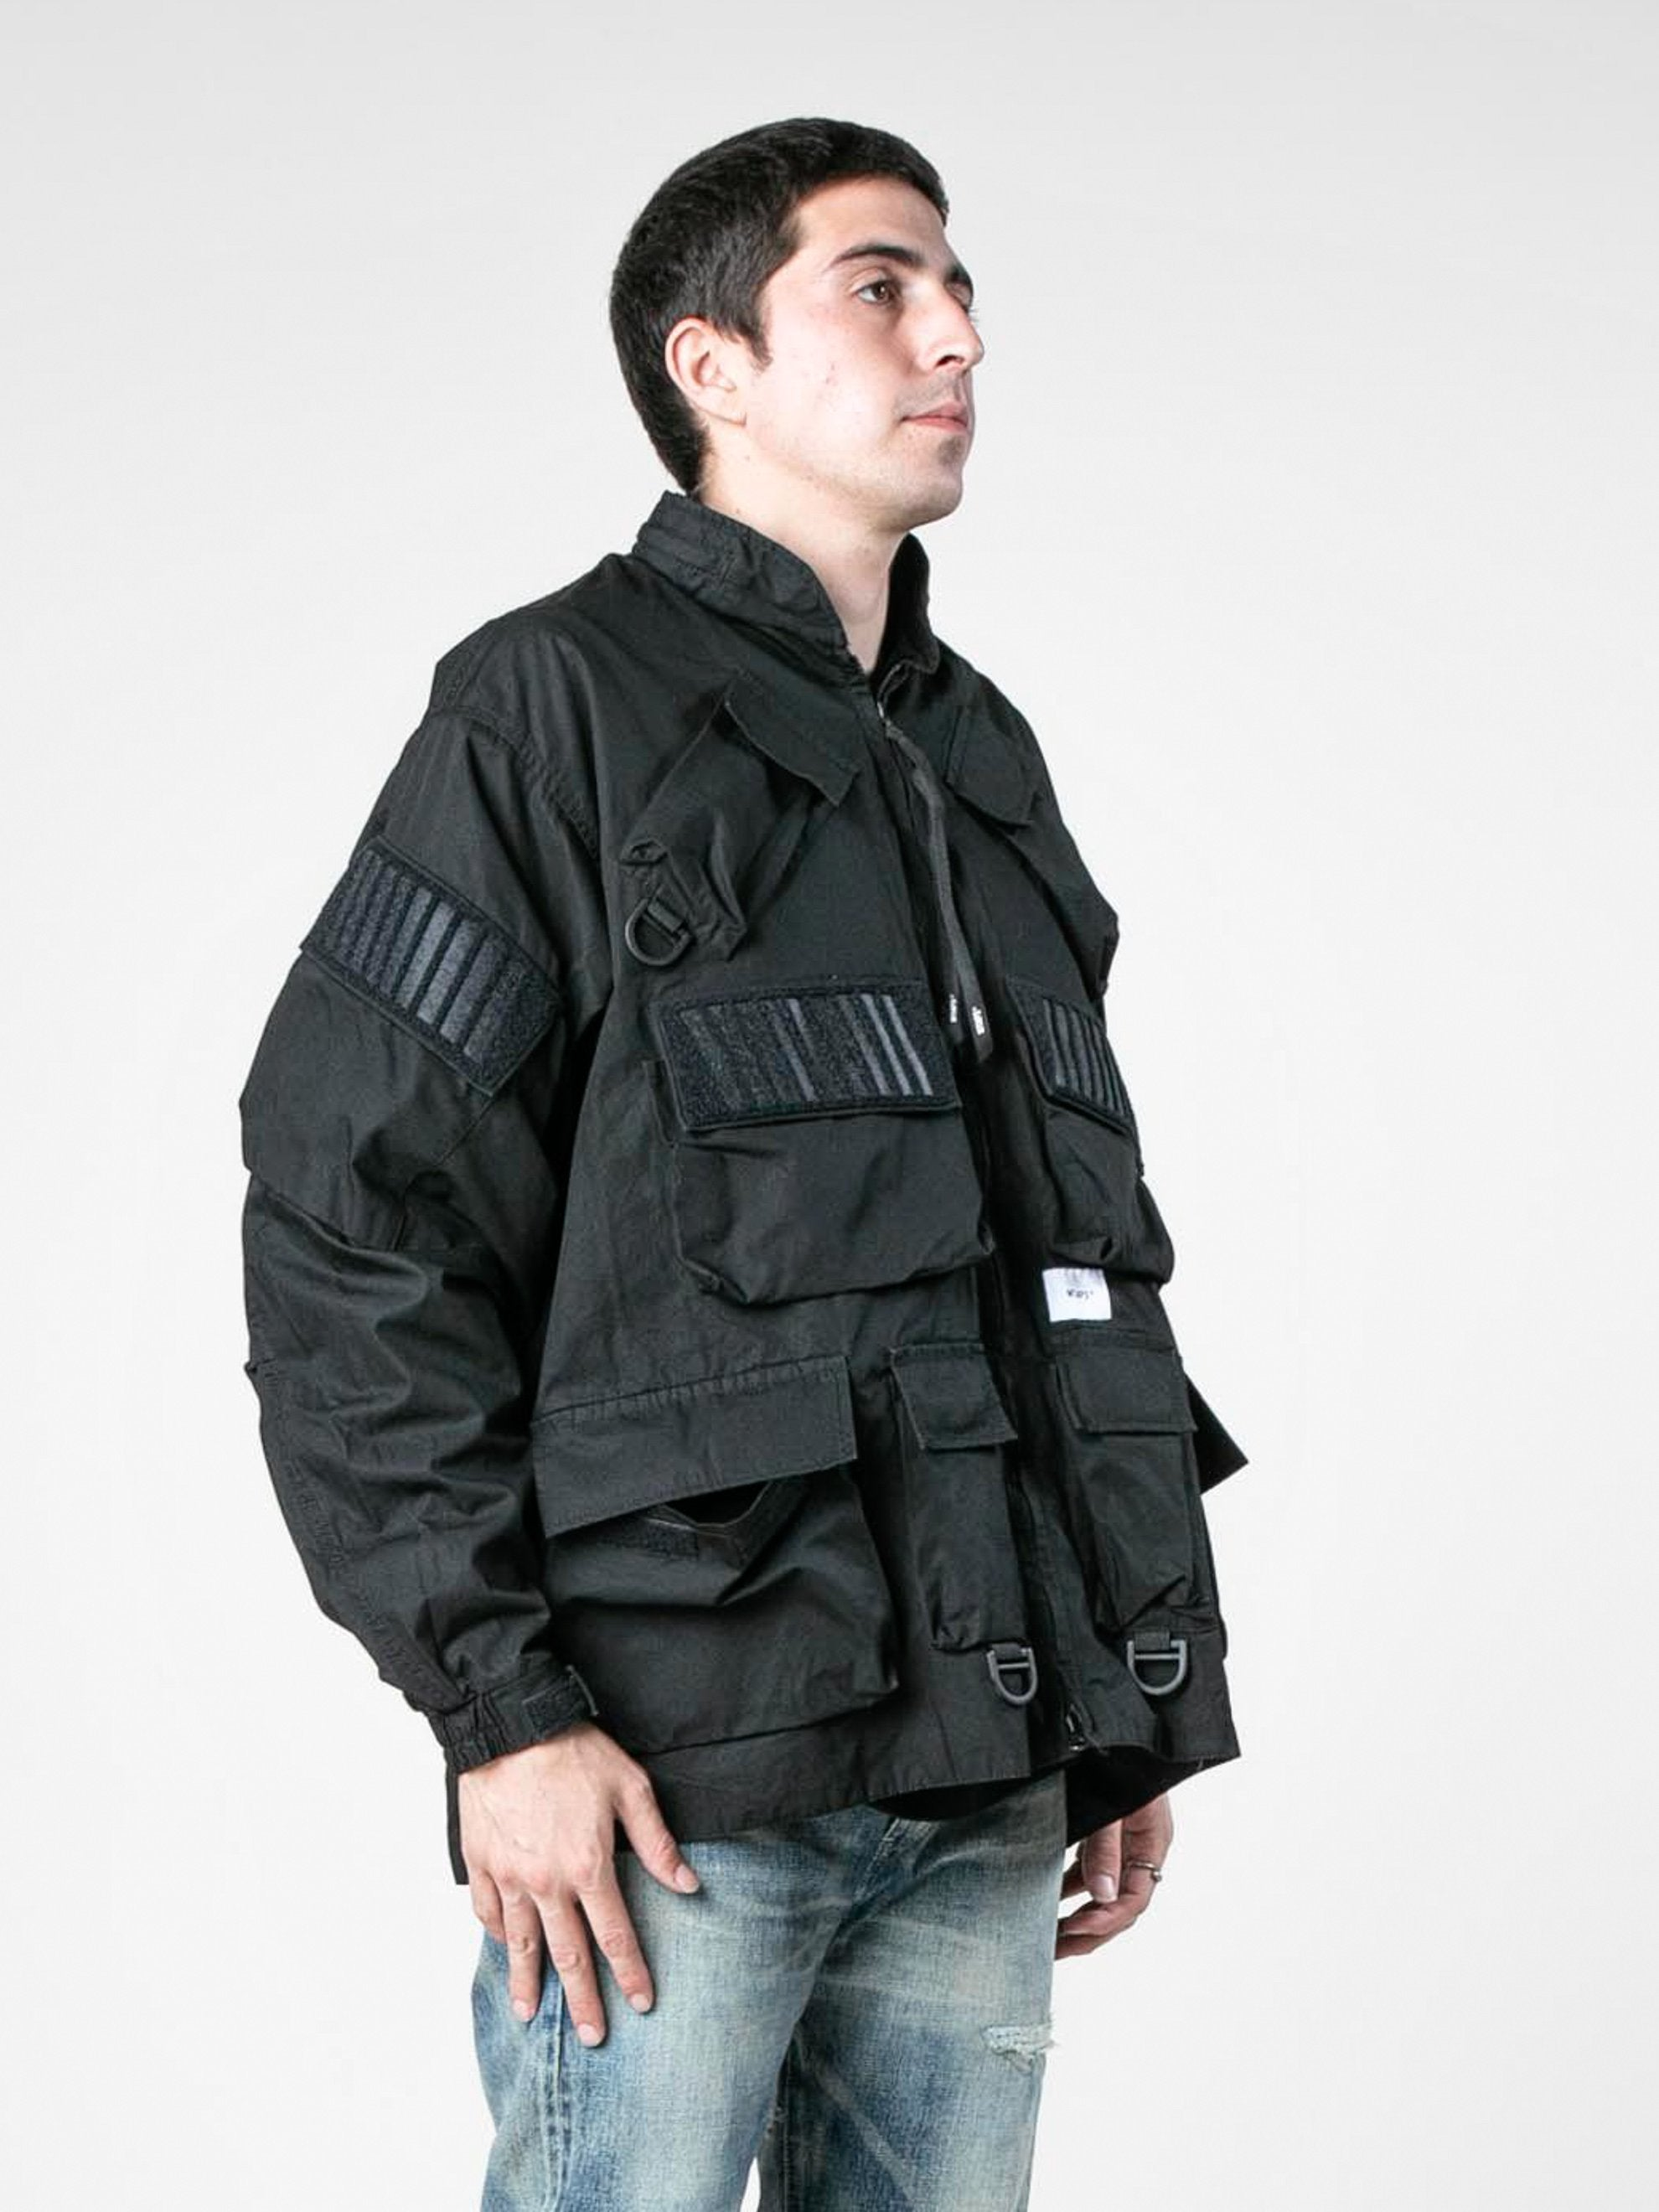 Black Modular / Jacket. Cotton. Weather 4